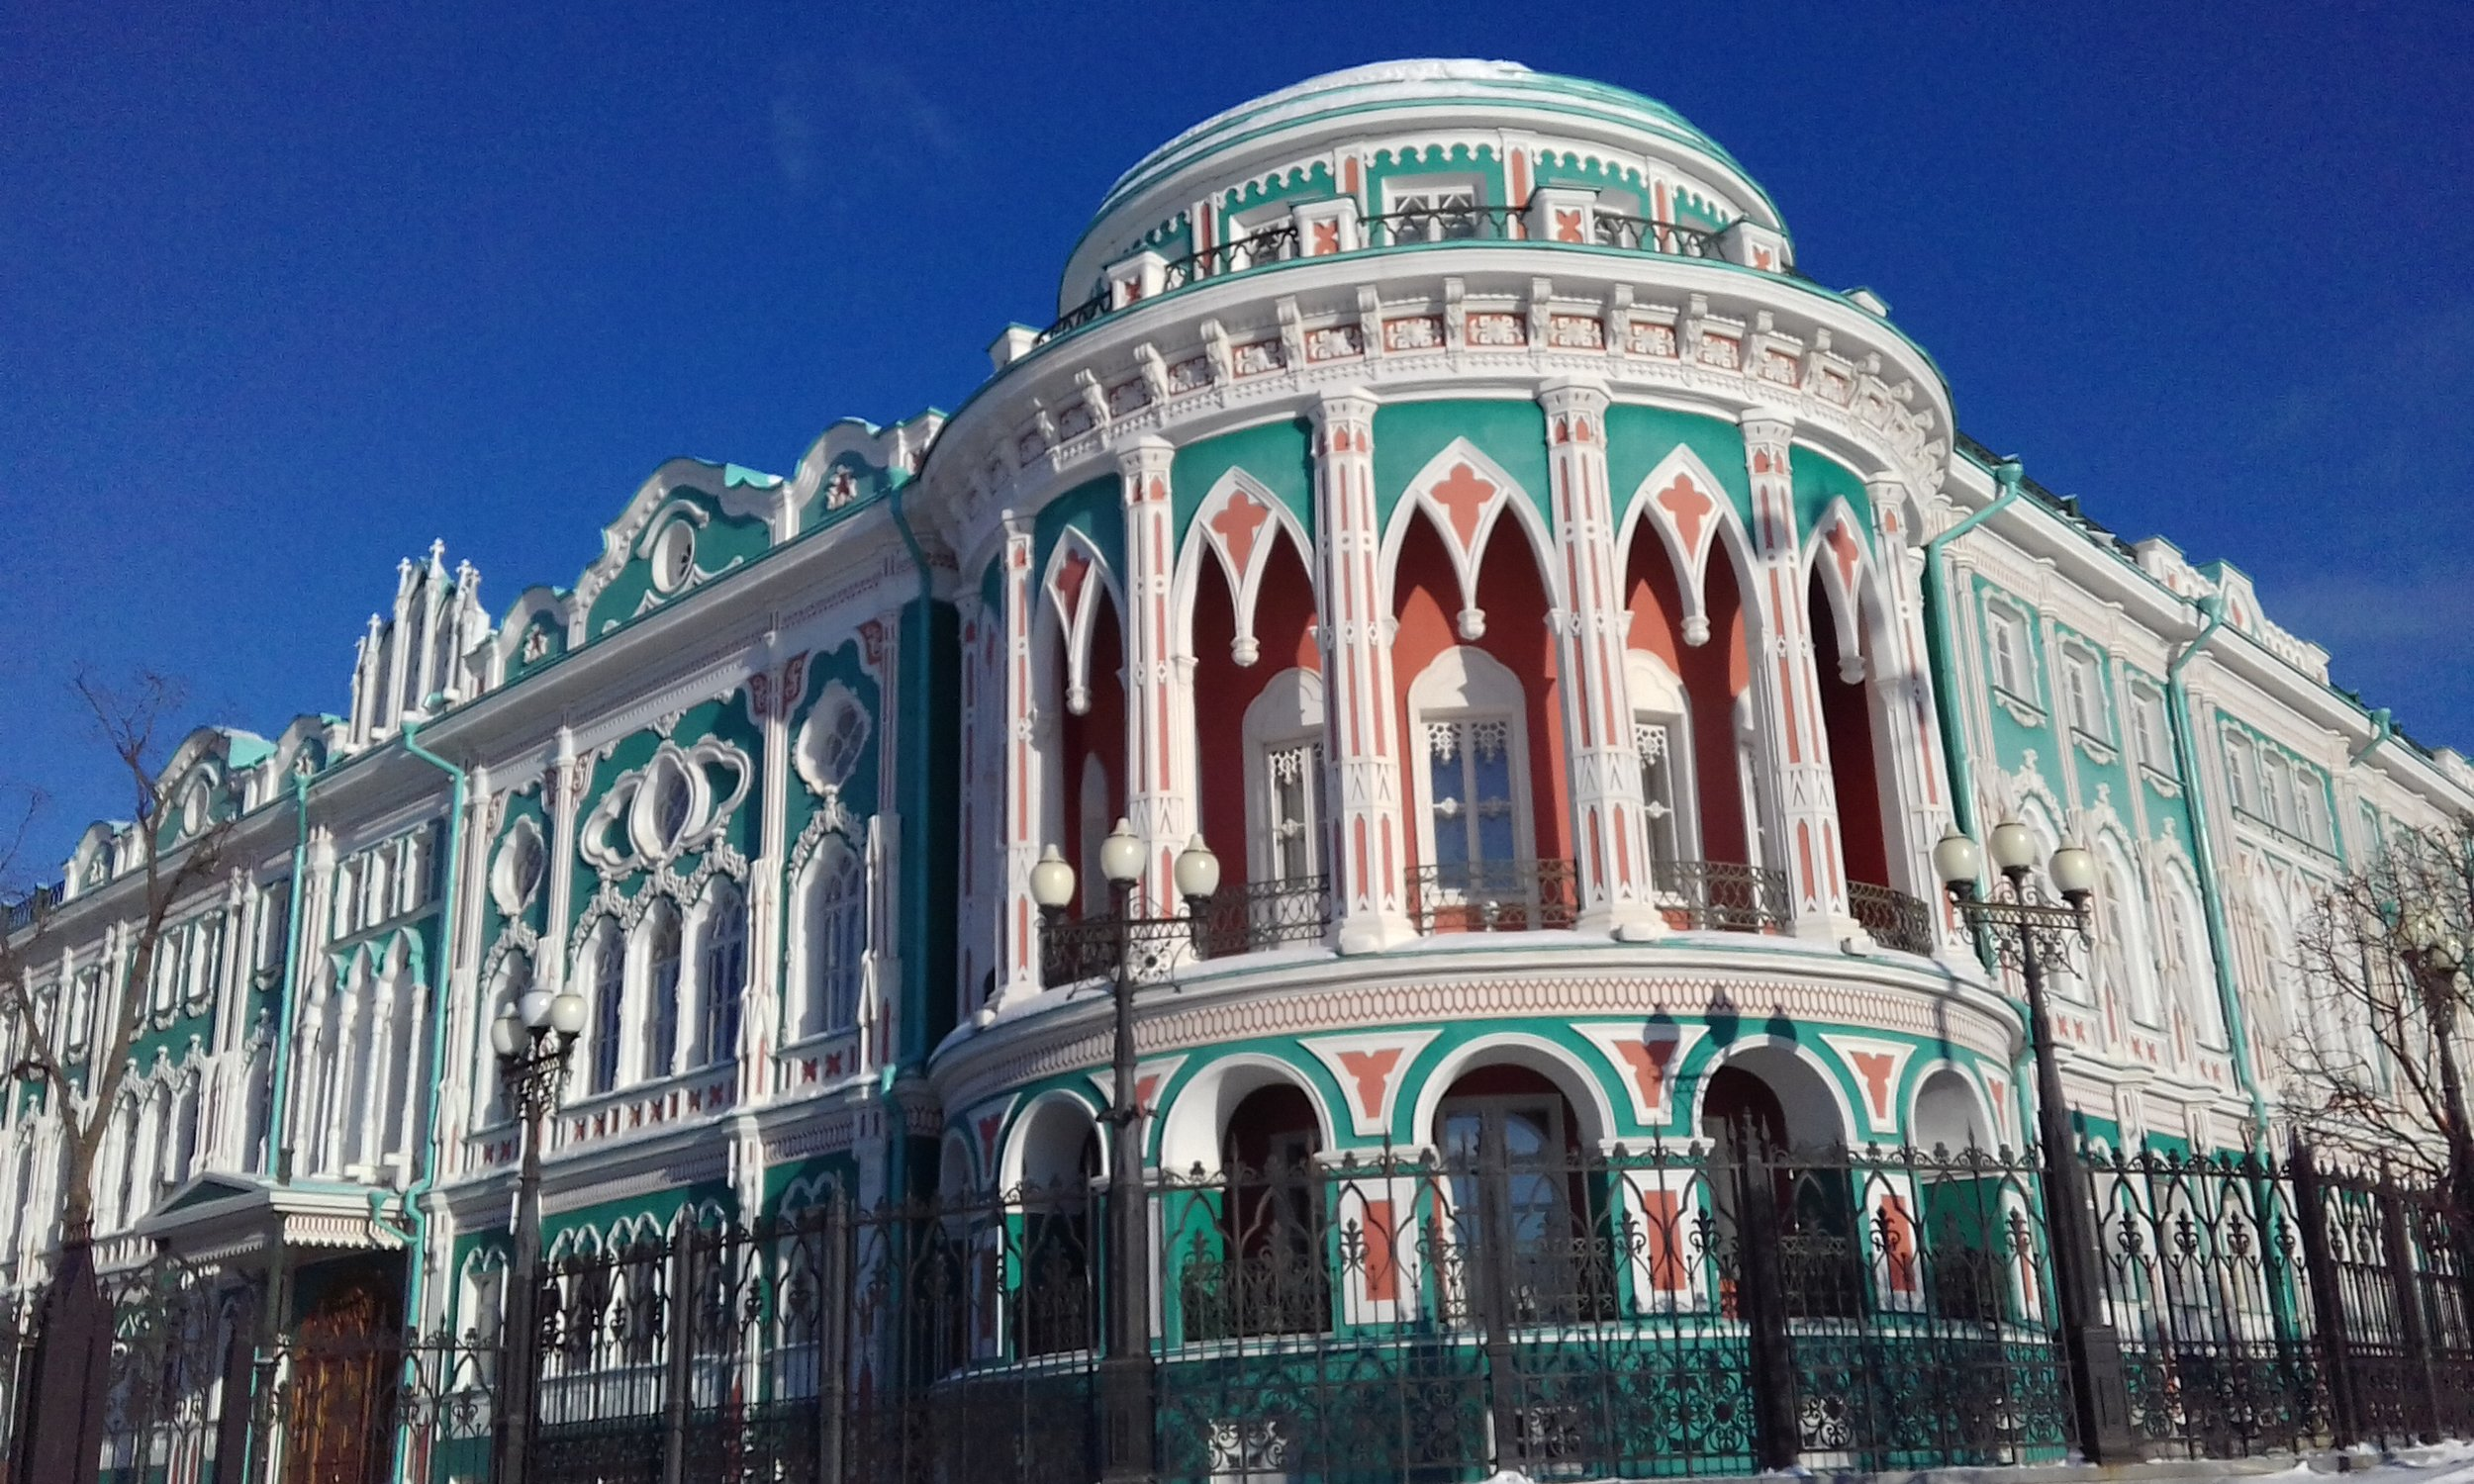 Distinctive architecture is one definitively Russian characteristic, but distance is the feeling that will always be singularly Russian to me.